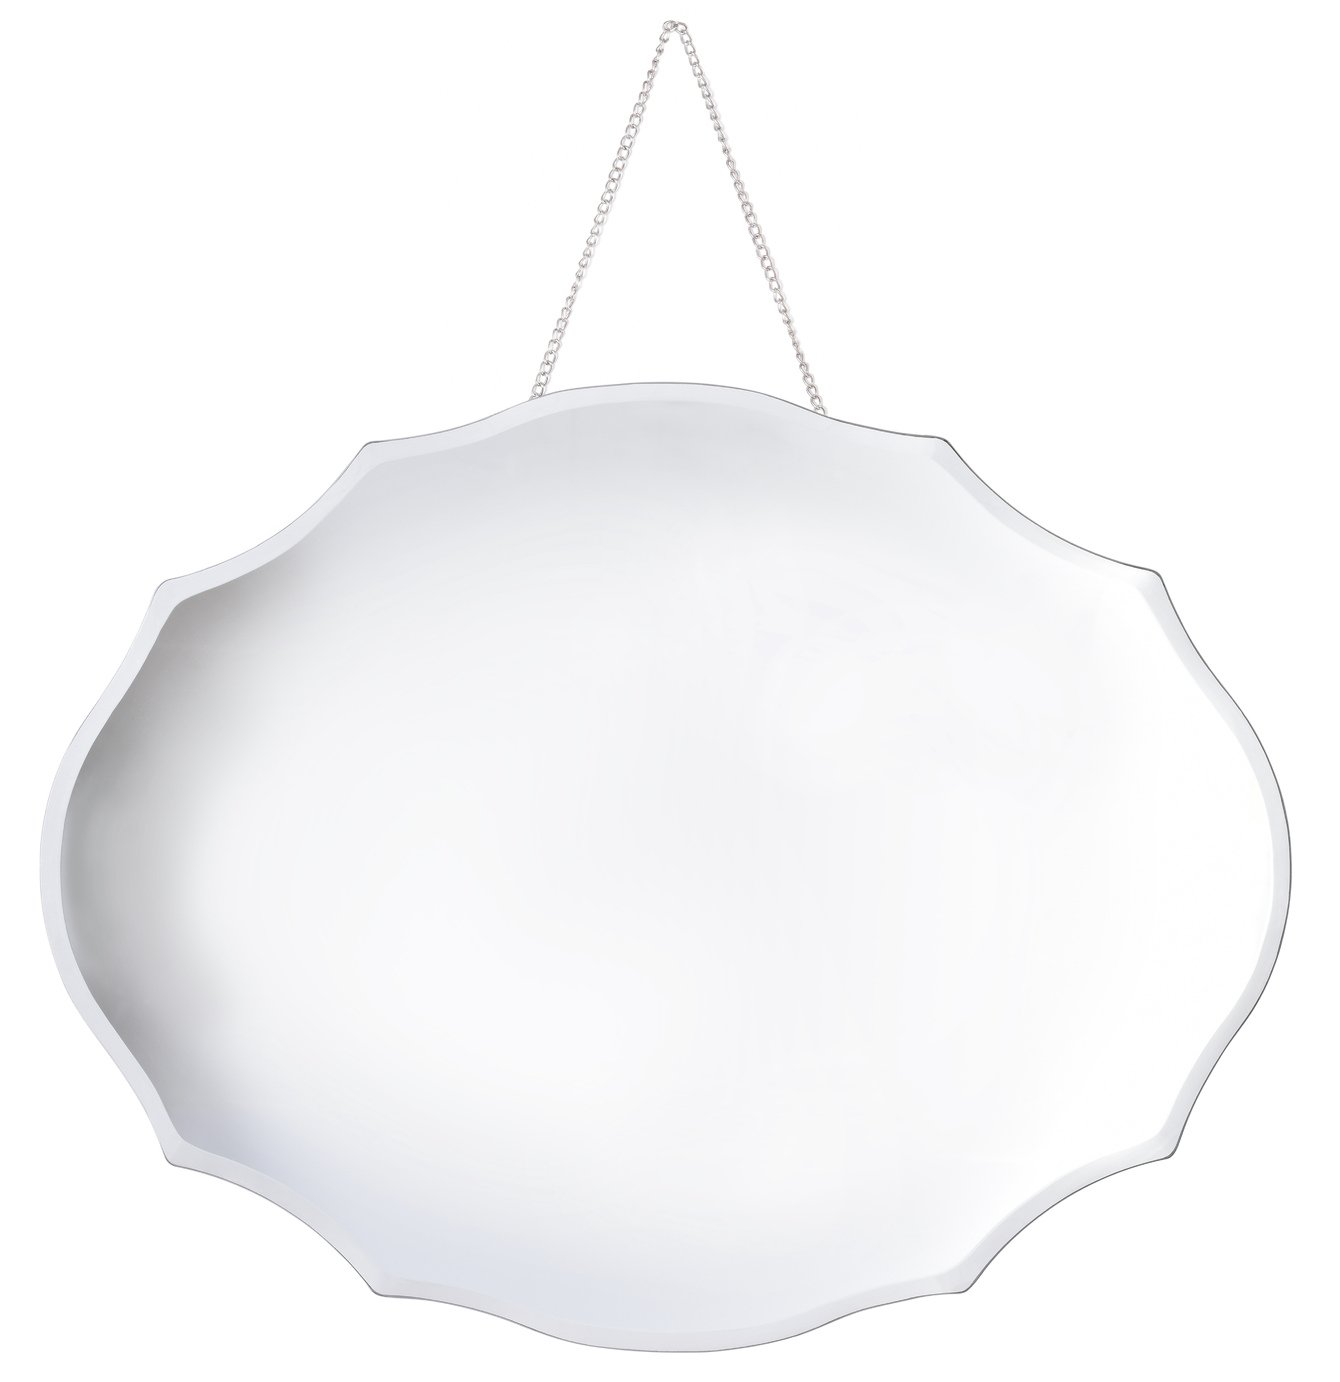 Innova Home Bevelled Oval Mirror and Chain Hanger